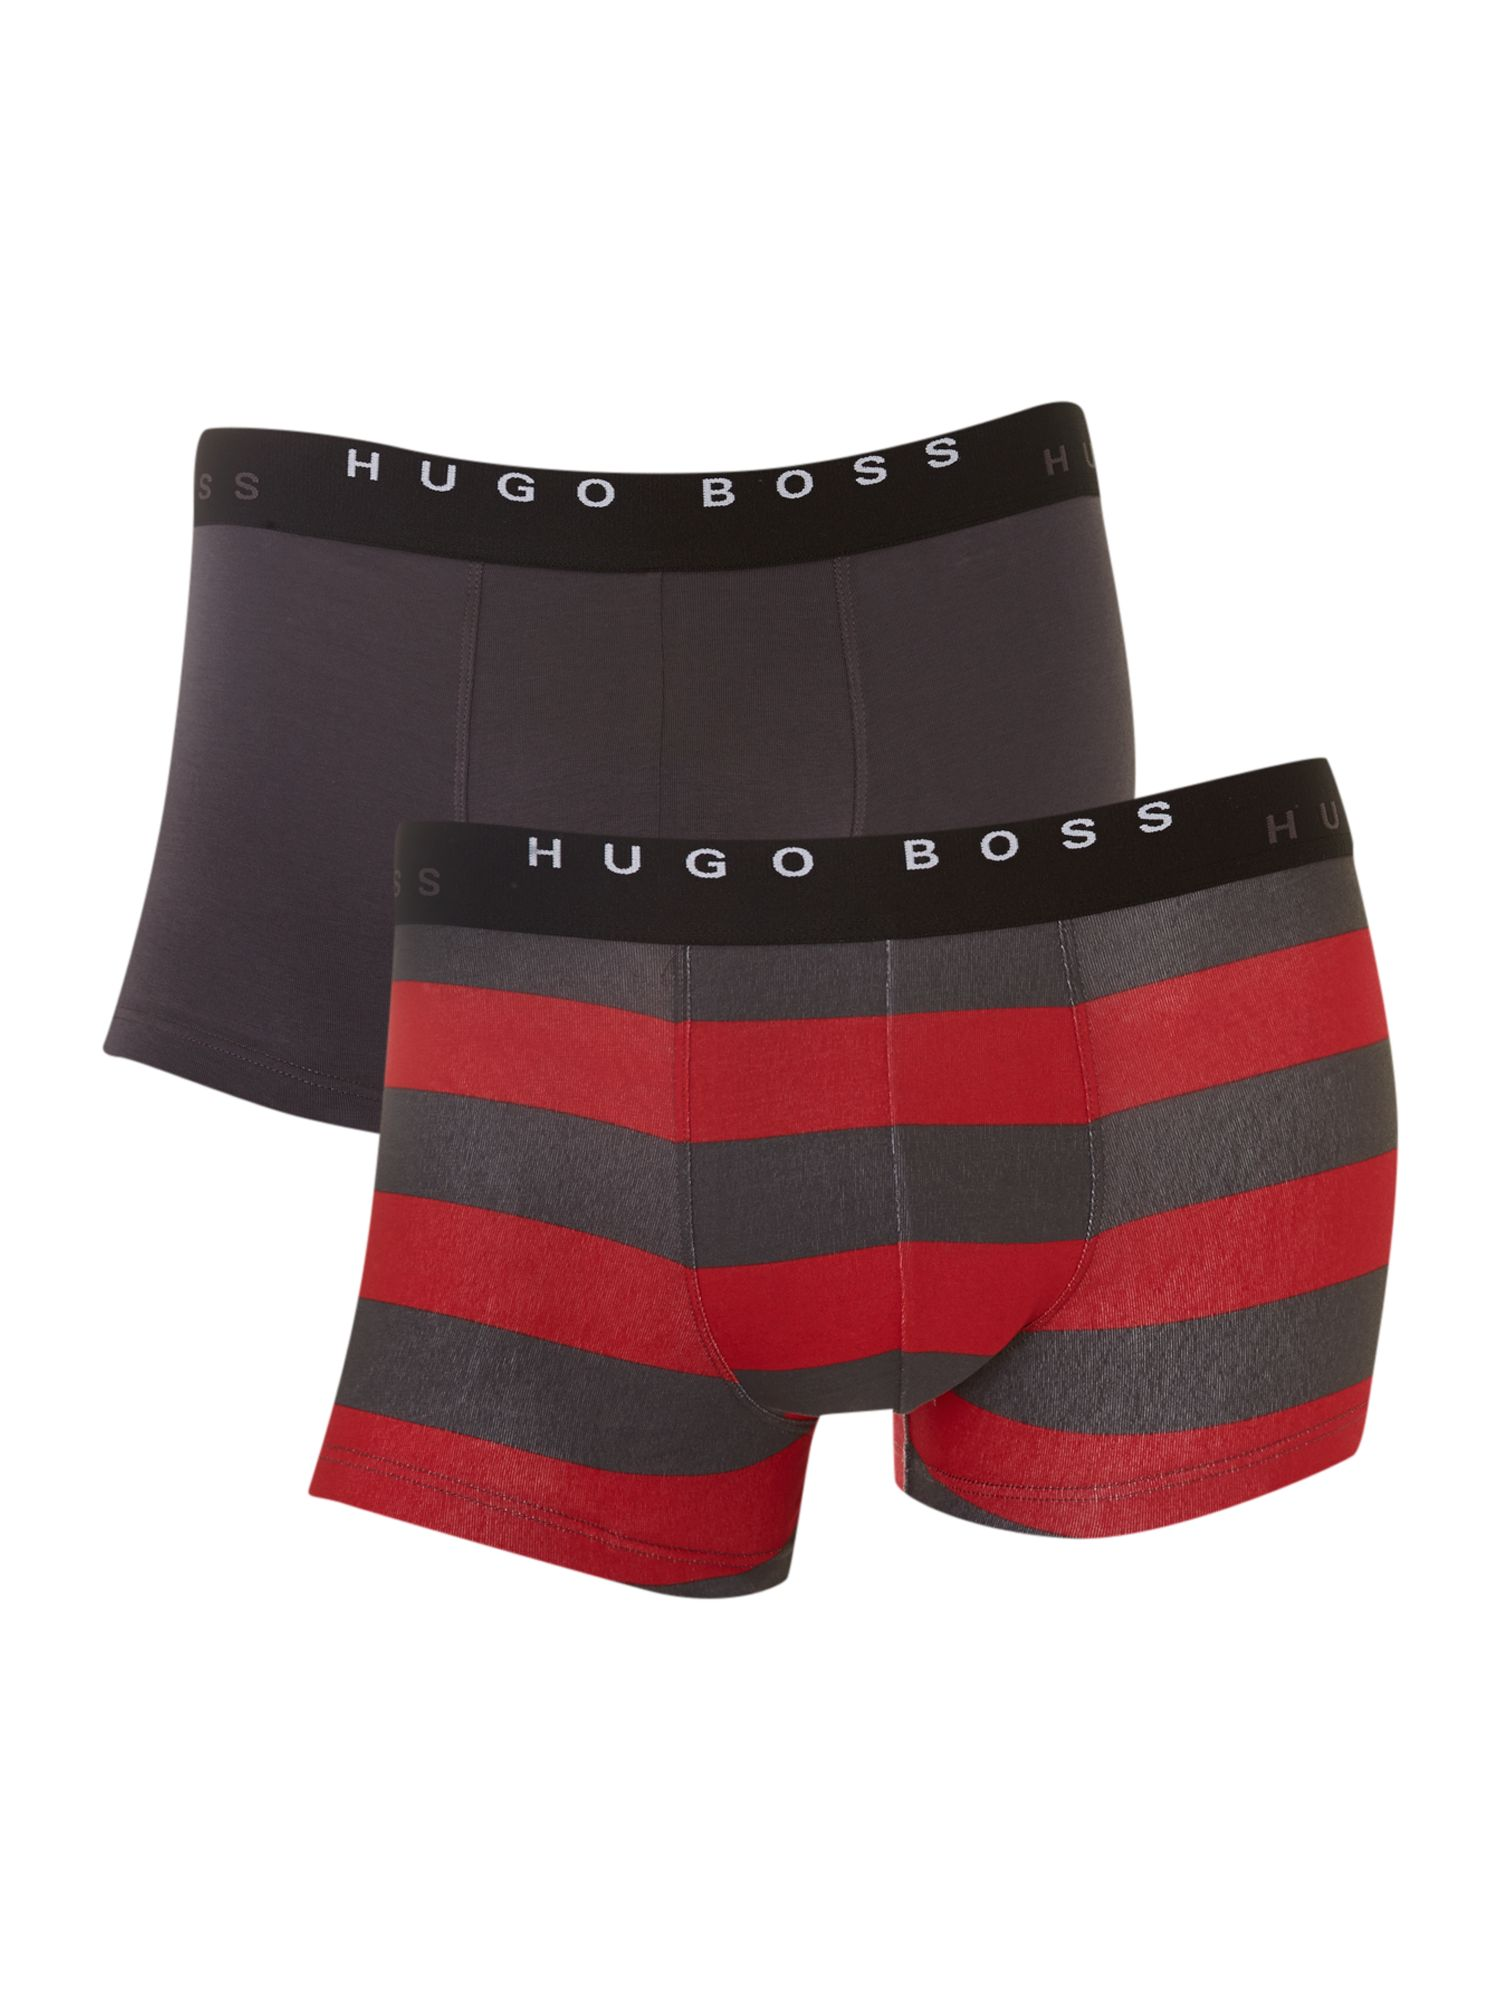 2 pack stripe and plain trunks